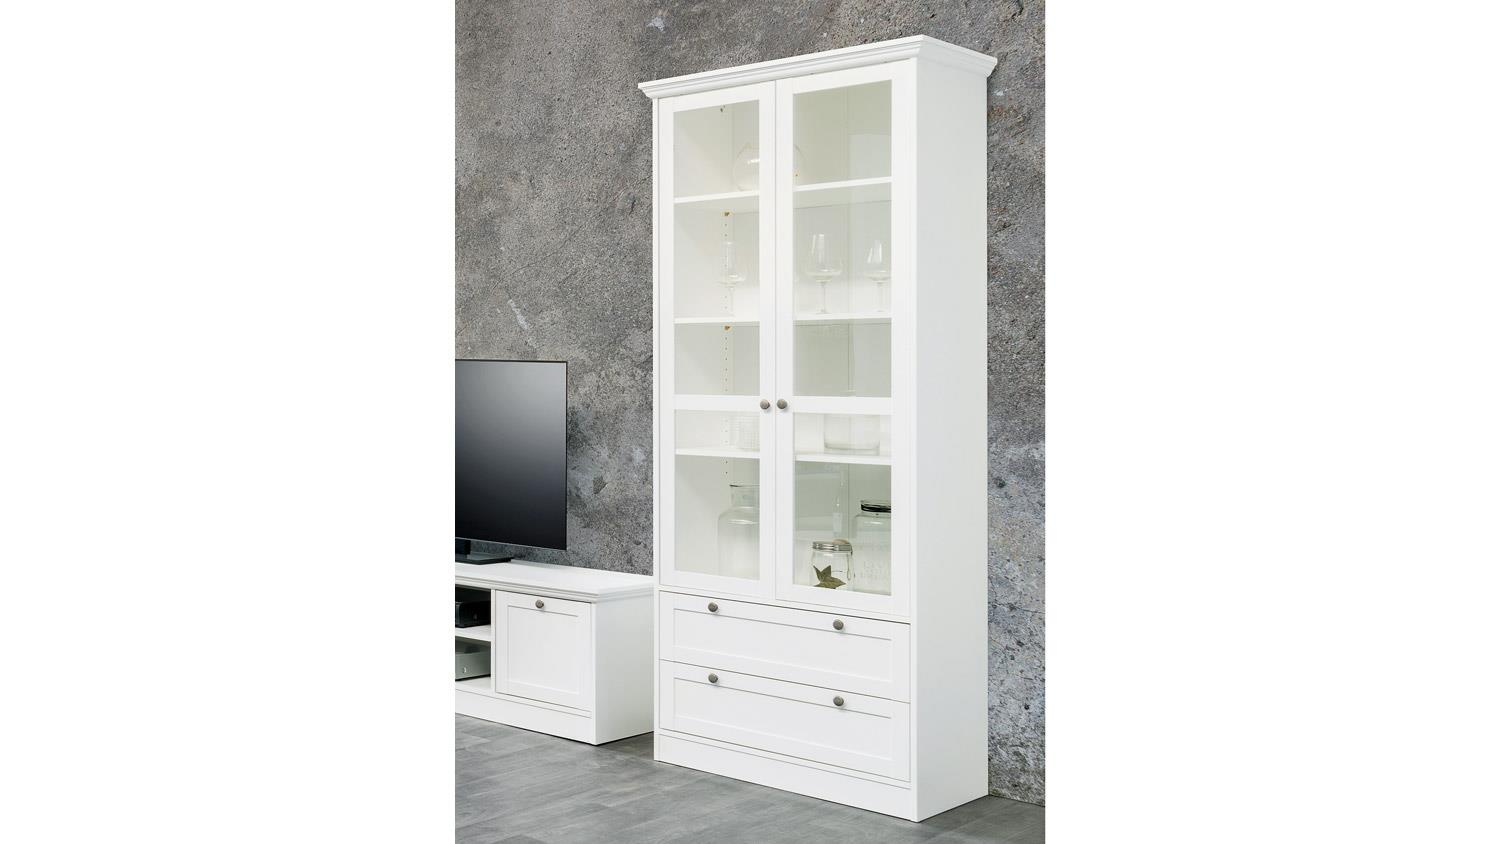 vitrine landwood standvitrine in wei mit 2 schubk sten landhausstil. Black Bedroom Furniture Sets. Home Design Ideas